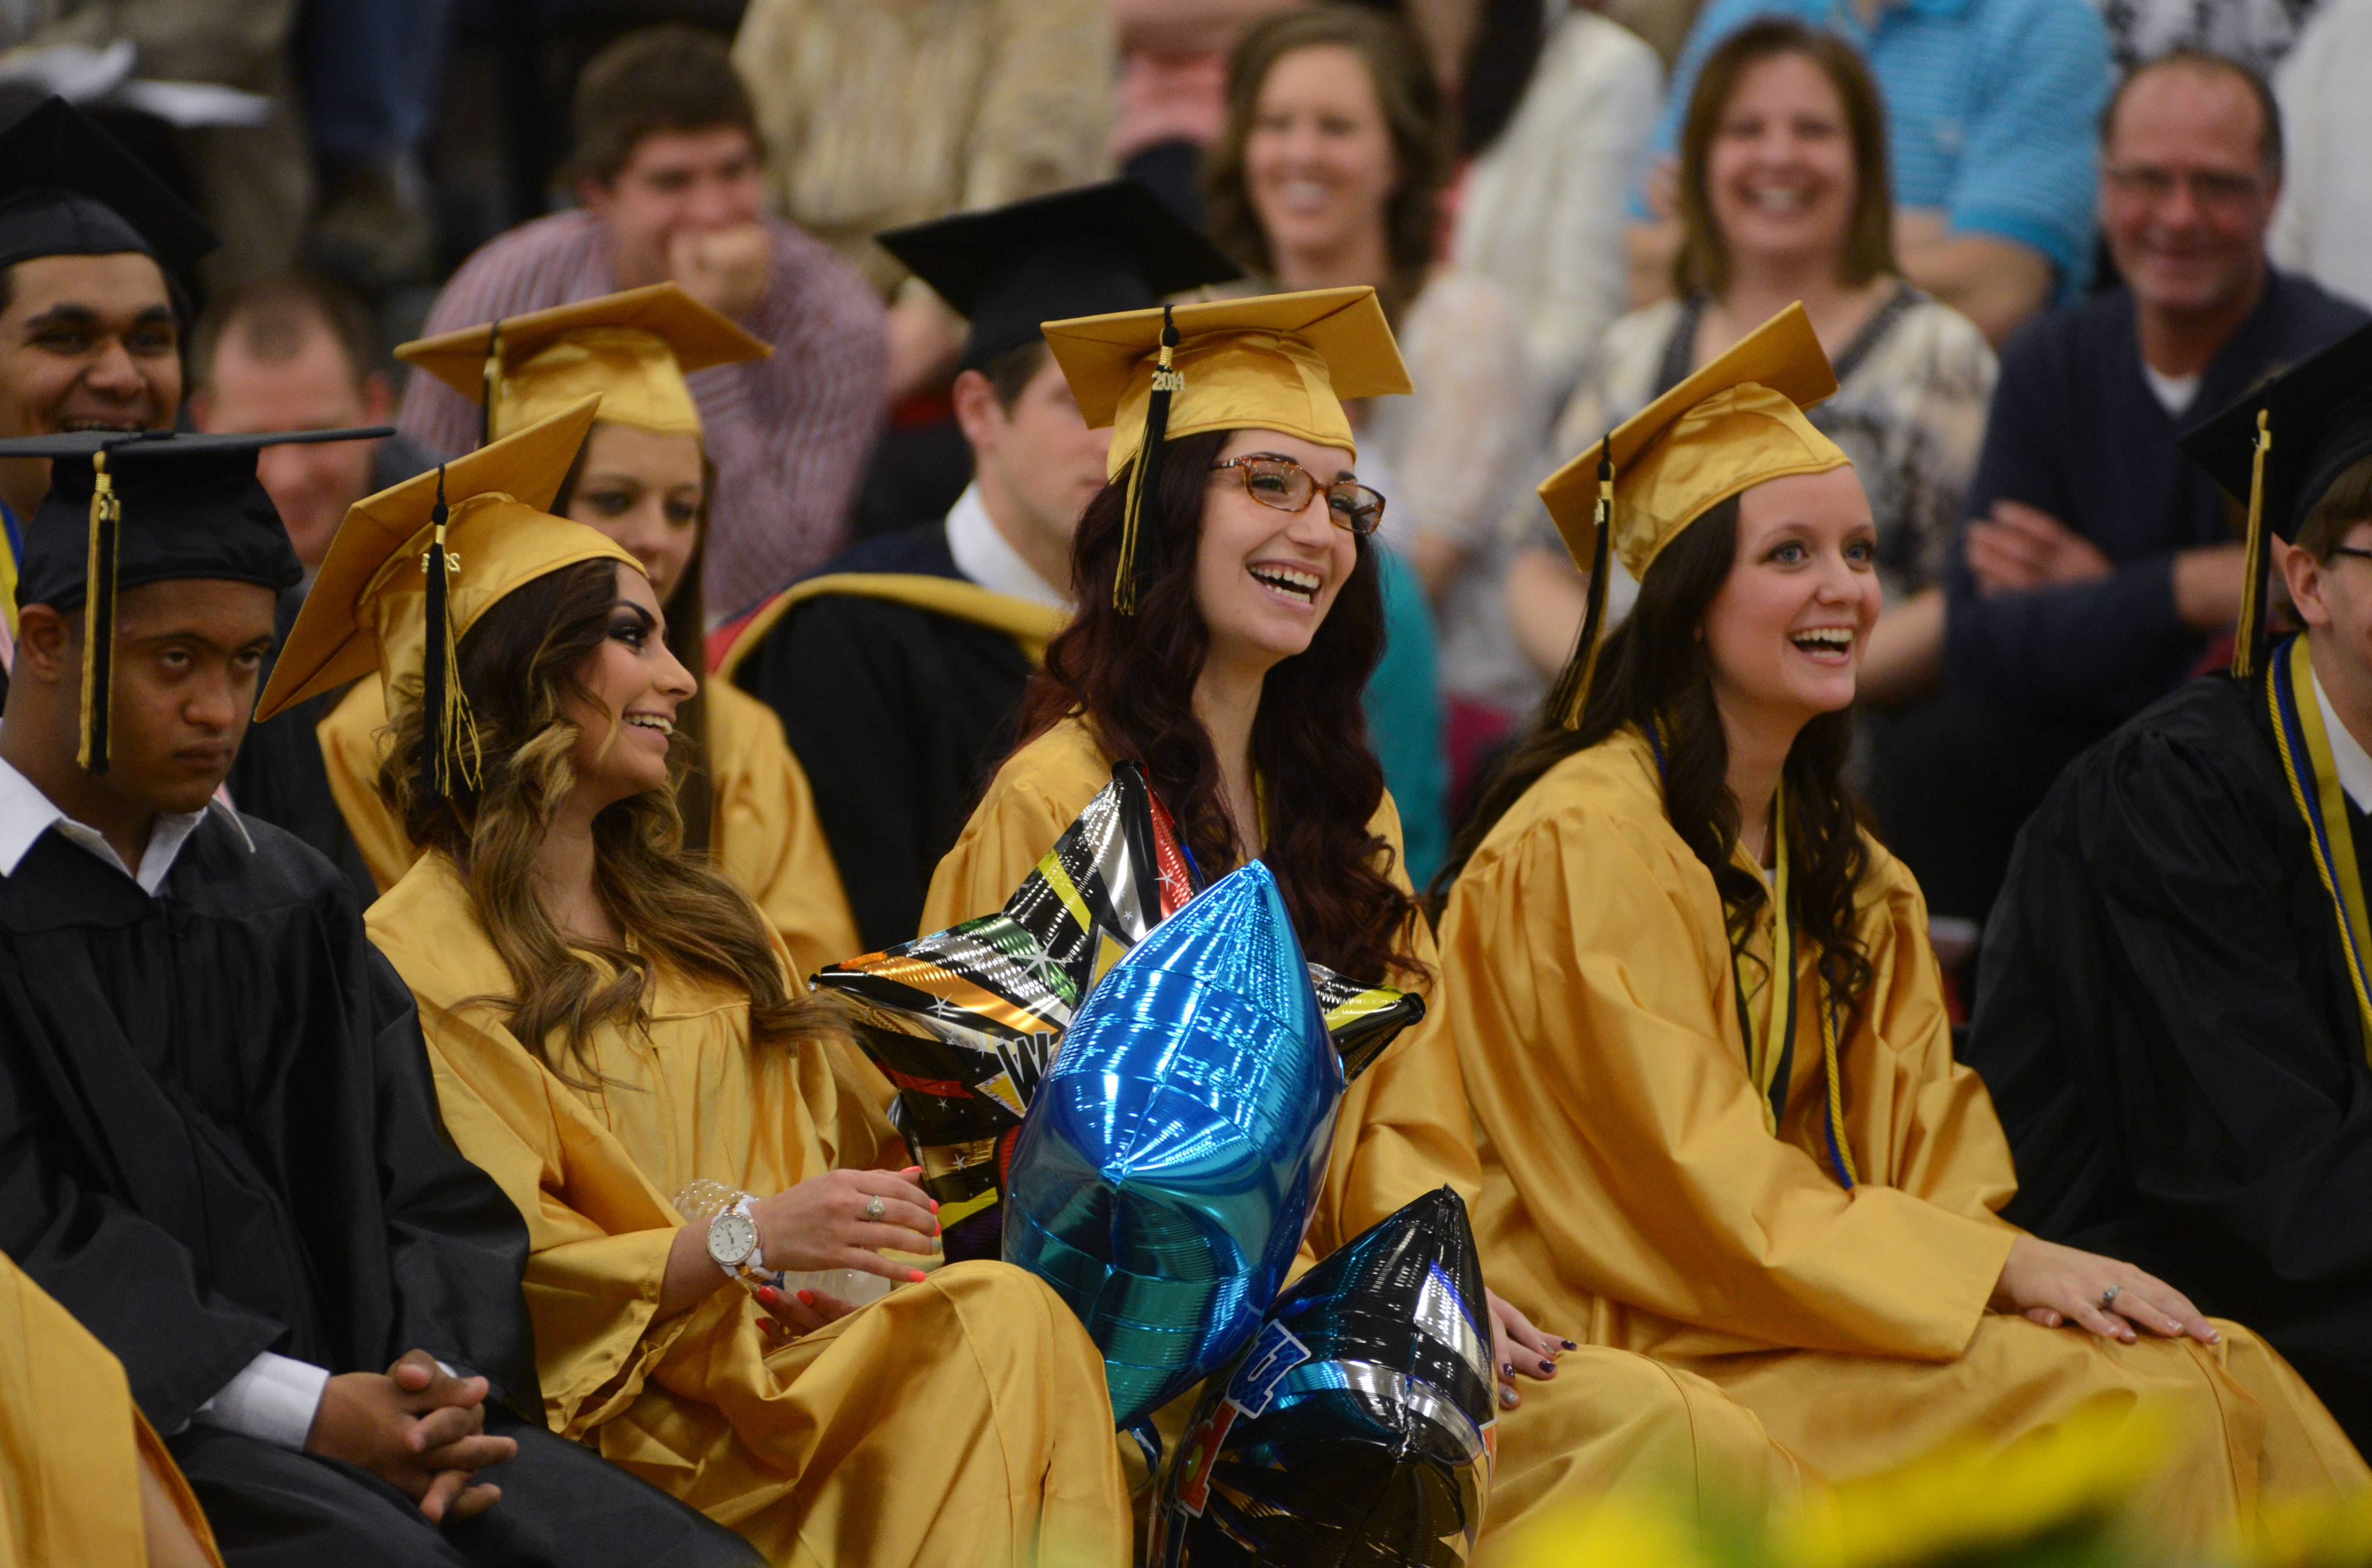 Grayslake North graduates and guests enjoy Sunday's staff speaker Brent Sadewater during the commencement ceremony.